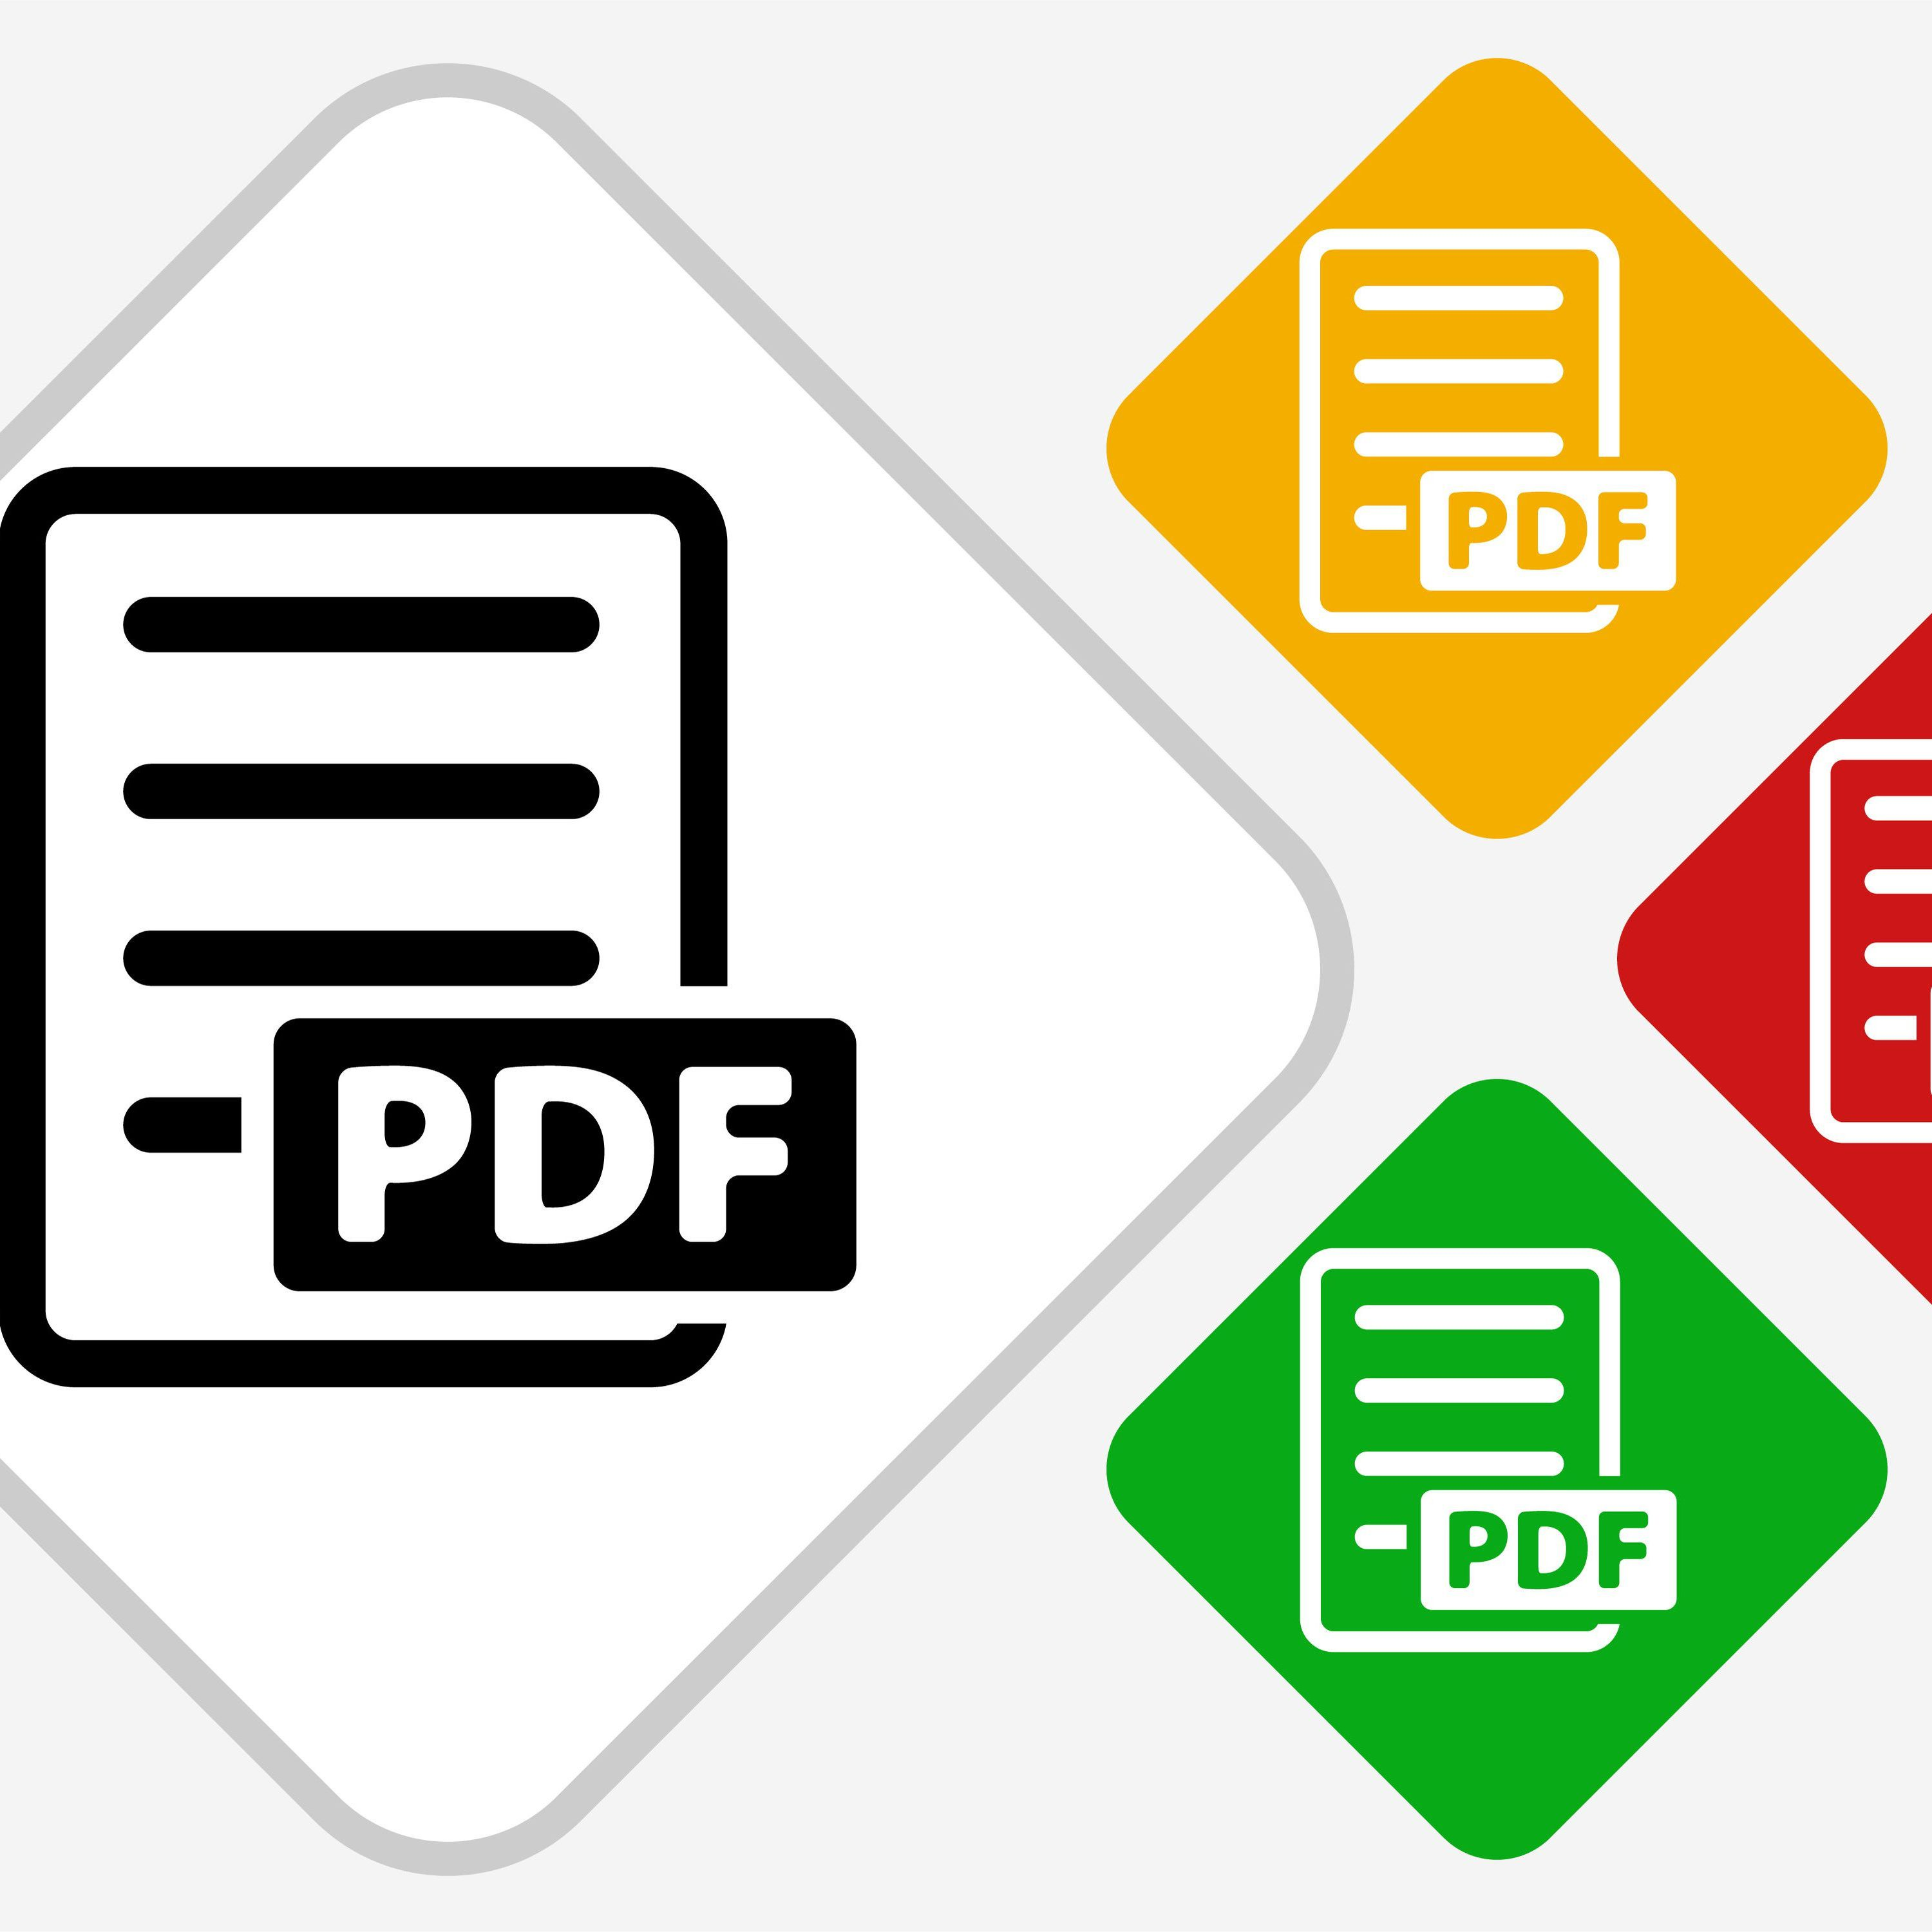 Converting Paper Documents to PDF